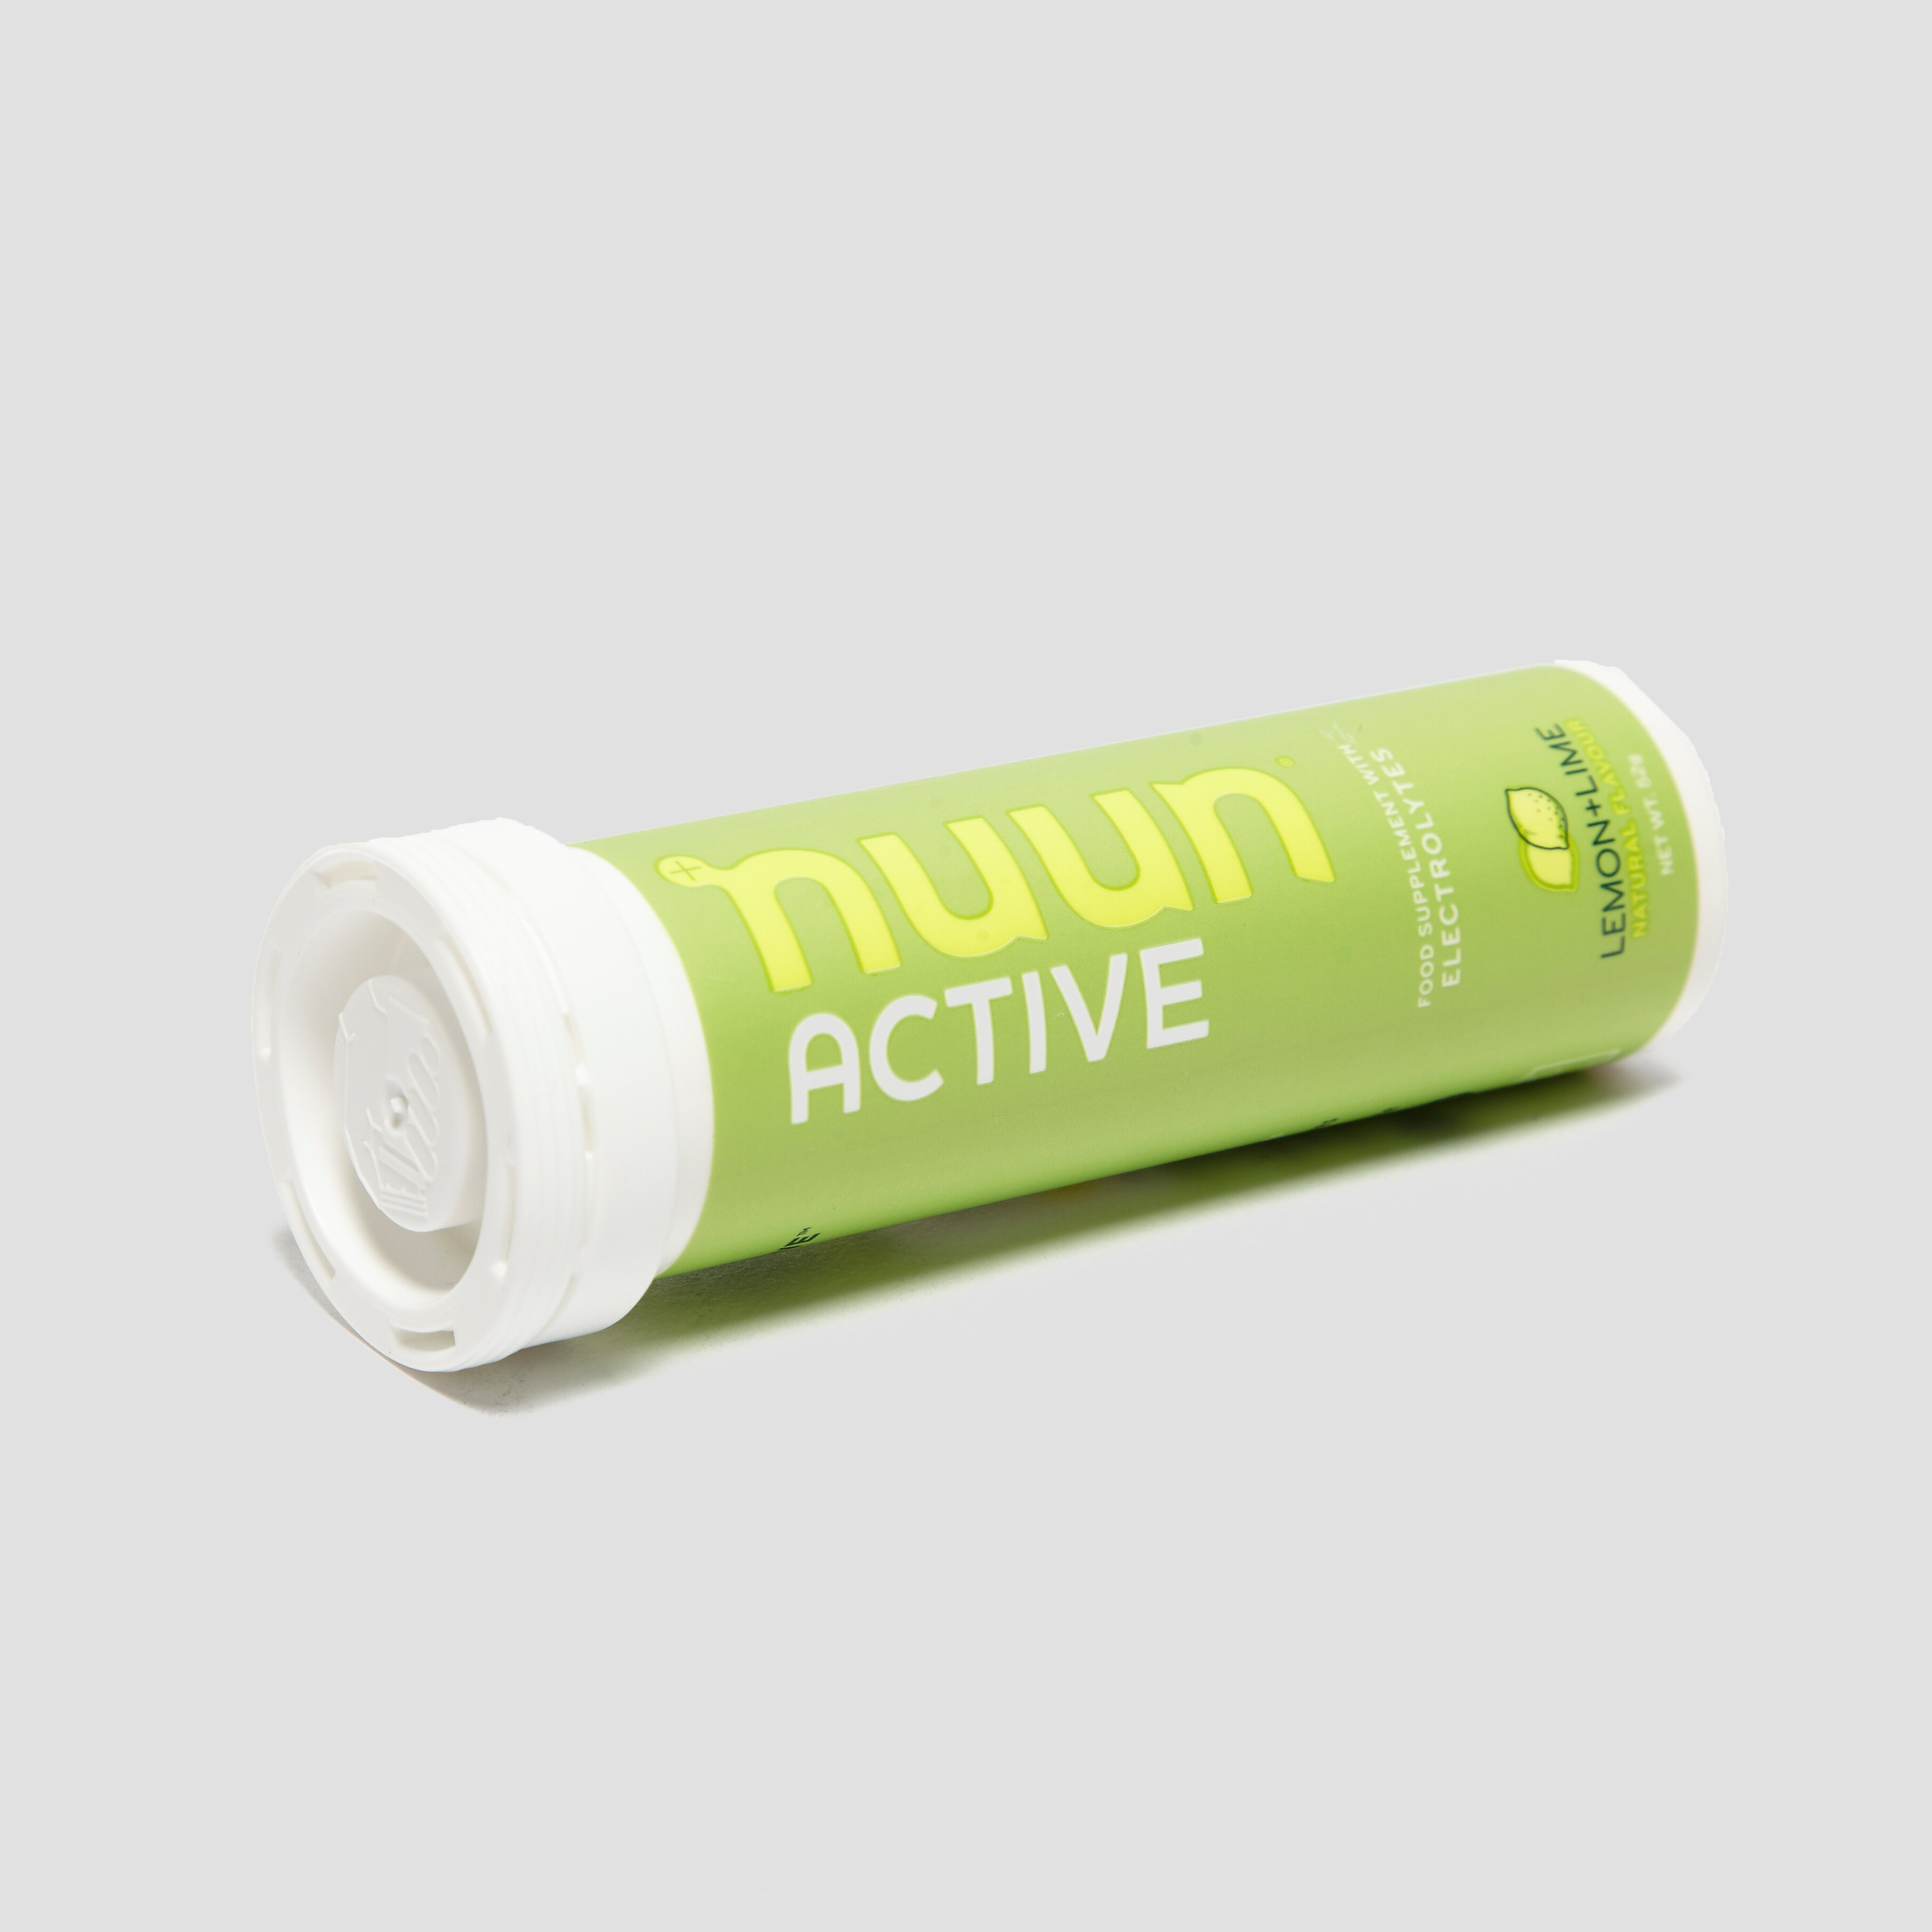 NUUN Active Tabs (8 Pack)- Lemon & Lime